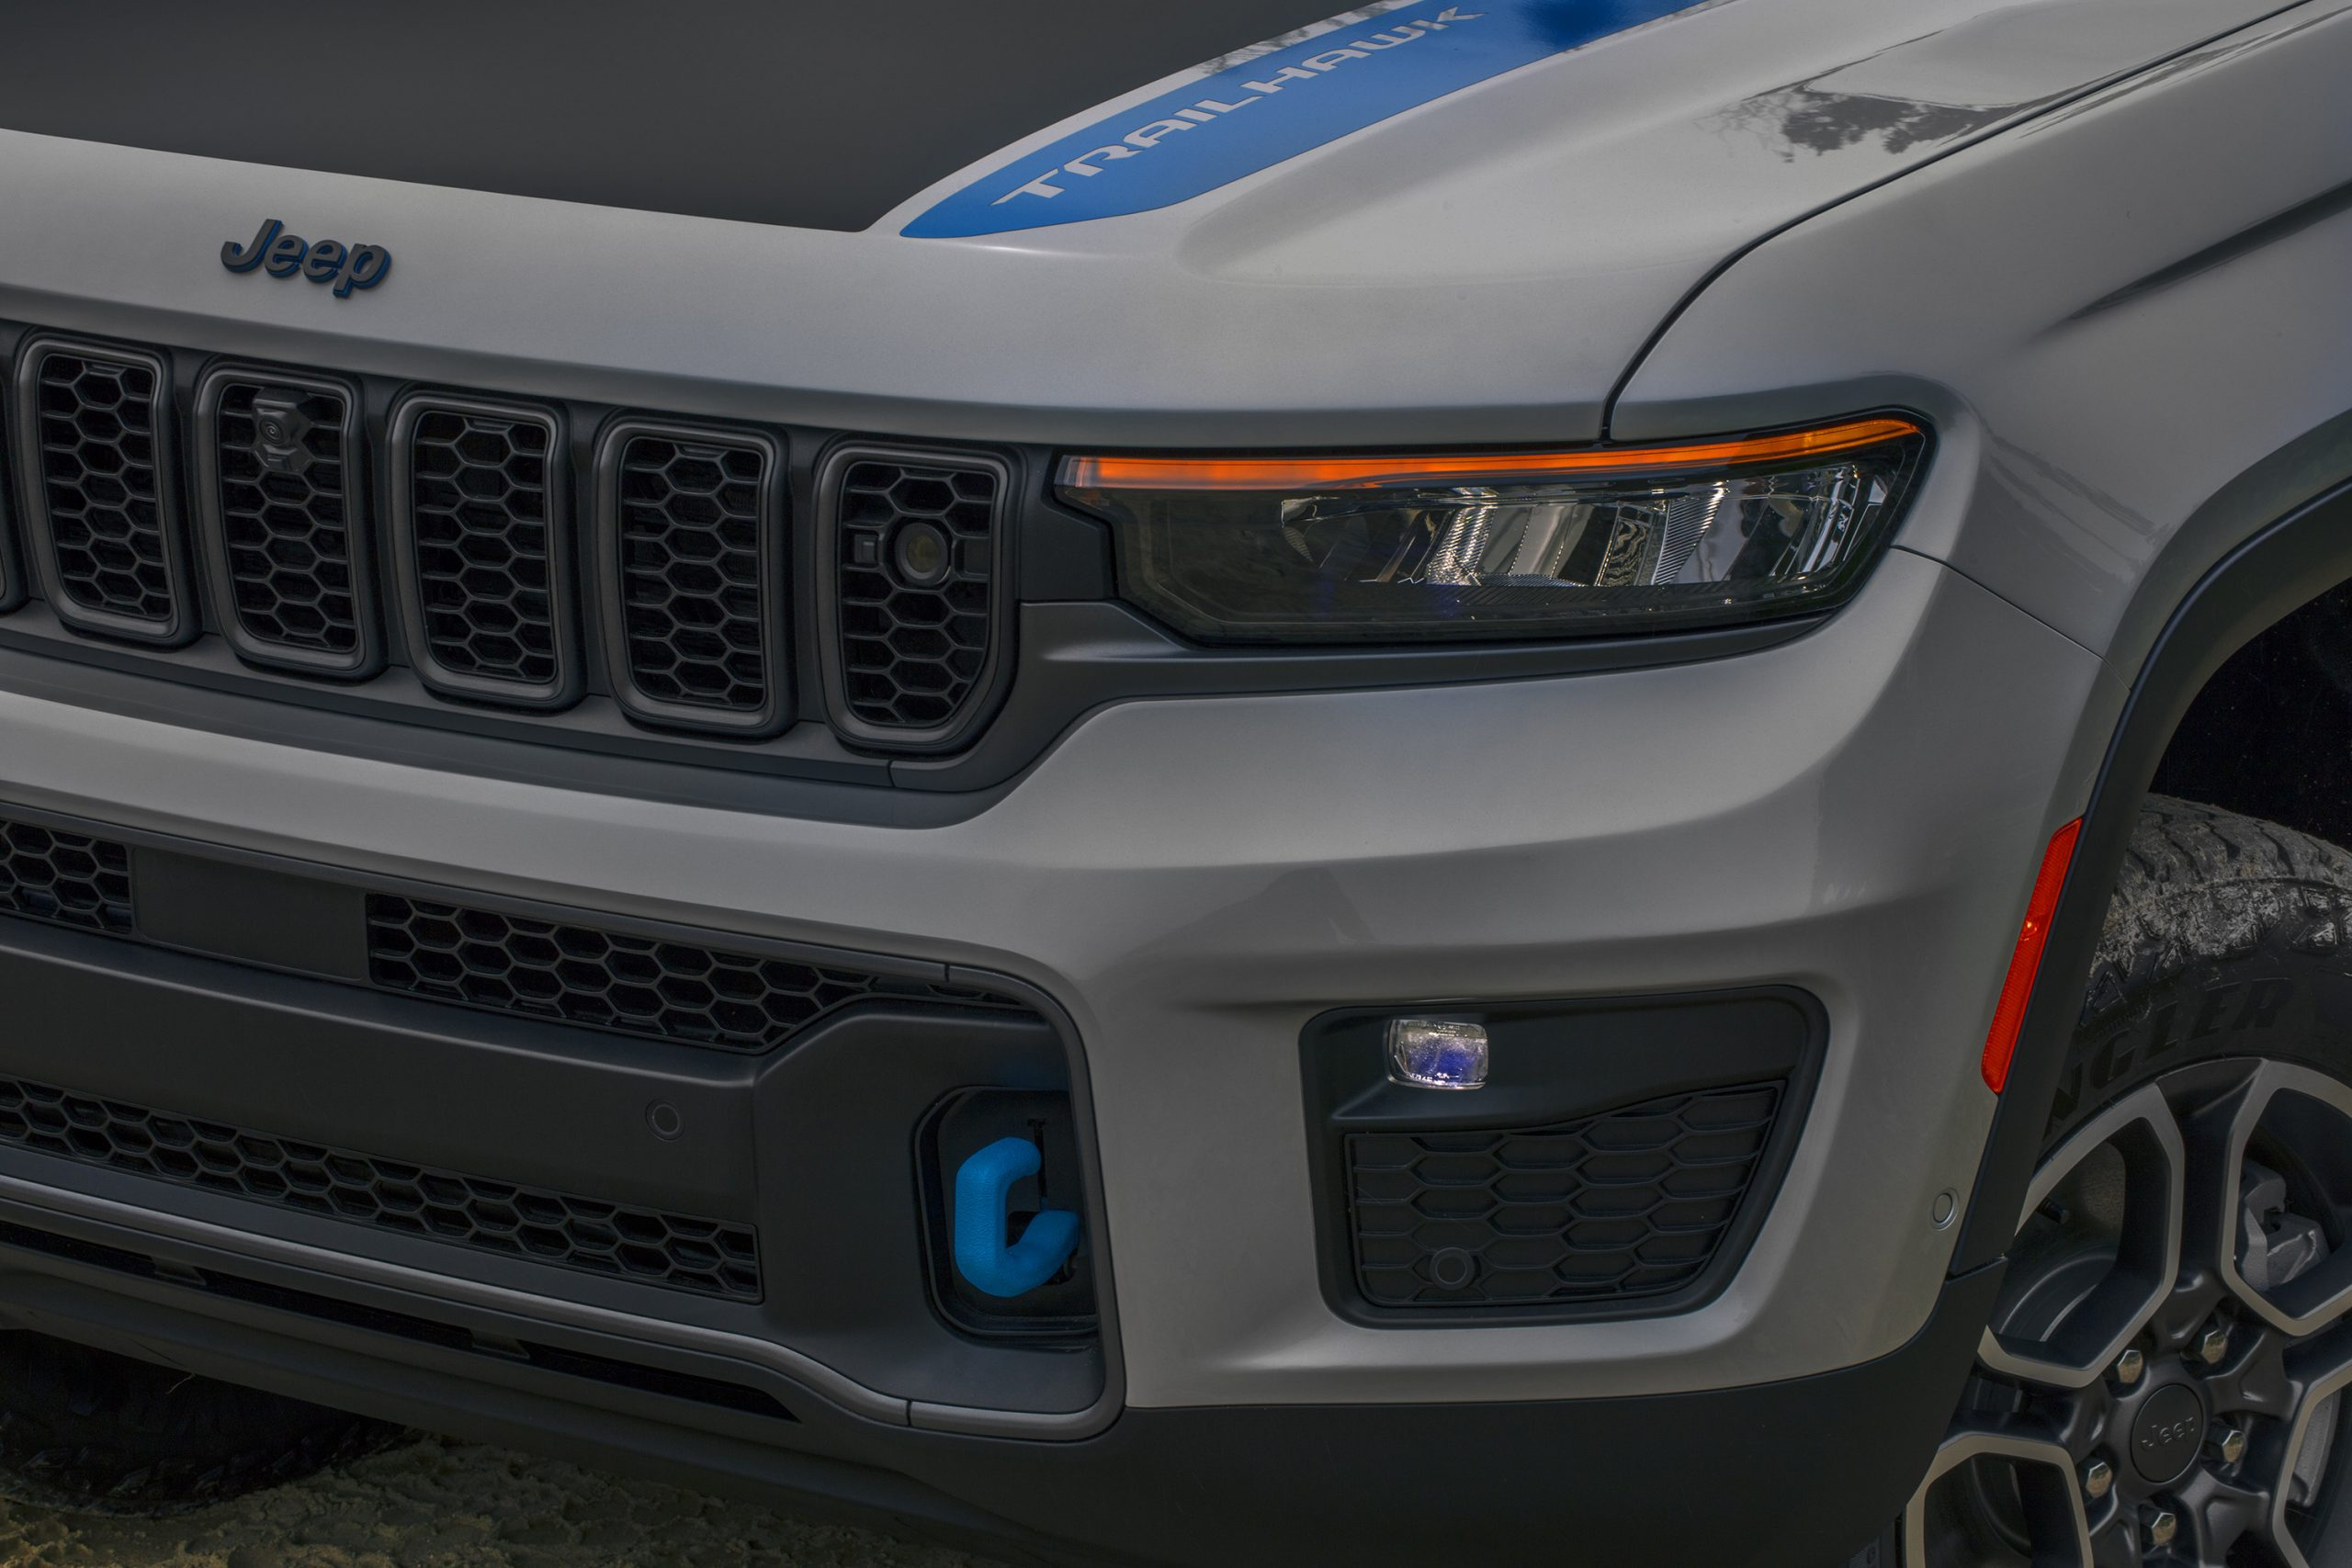 2022 Jeep Grand Cherokee Trailhawk 4xe front end details